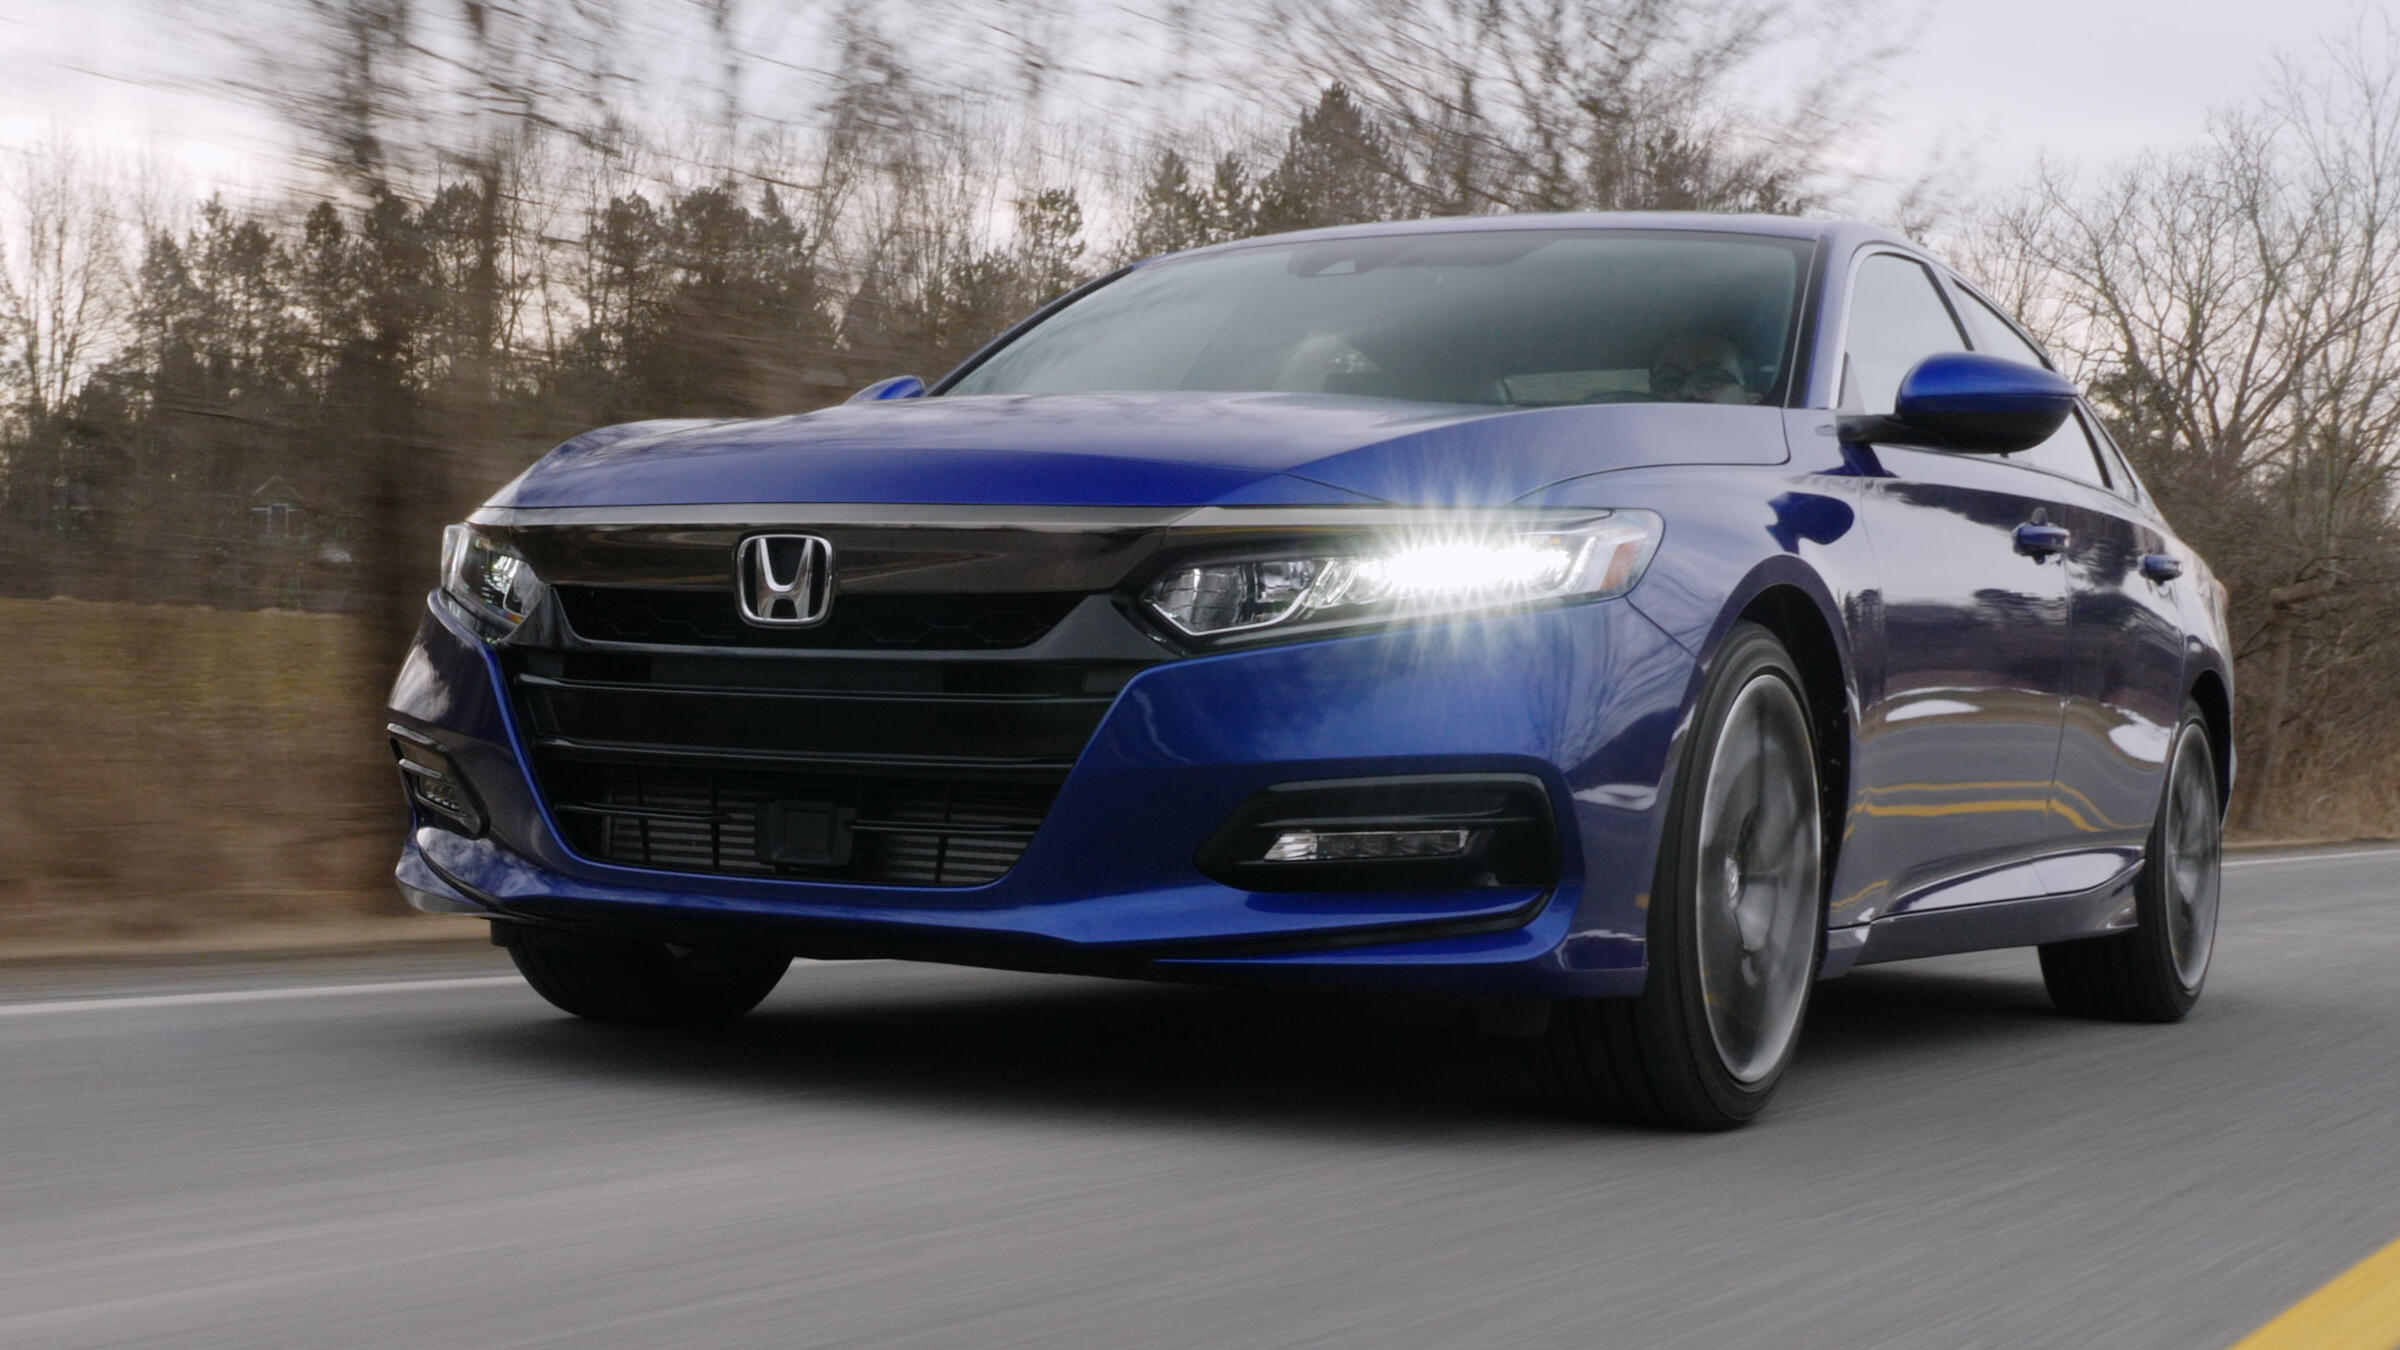 Video: 2020 Honda Accord: A family sedan for enthusiasts